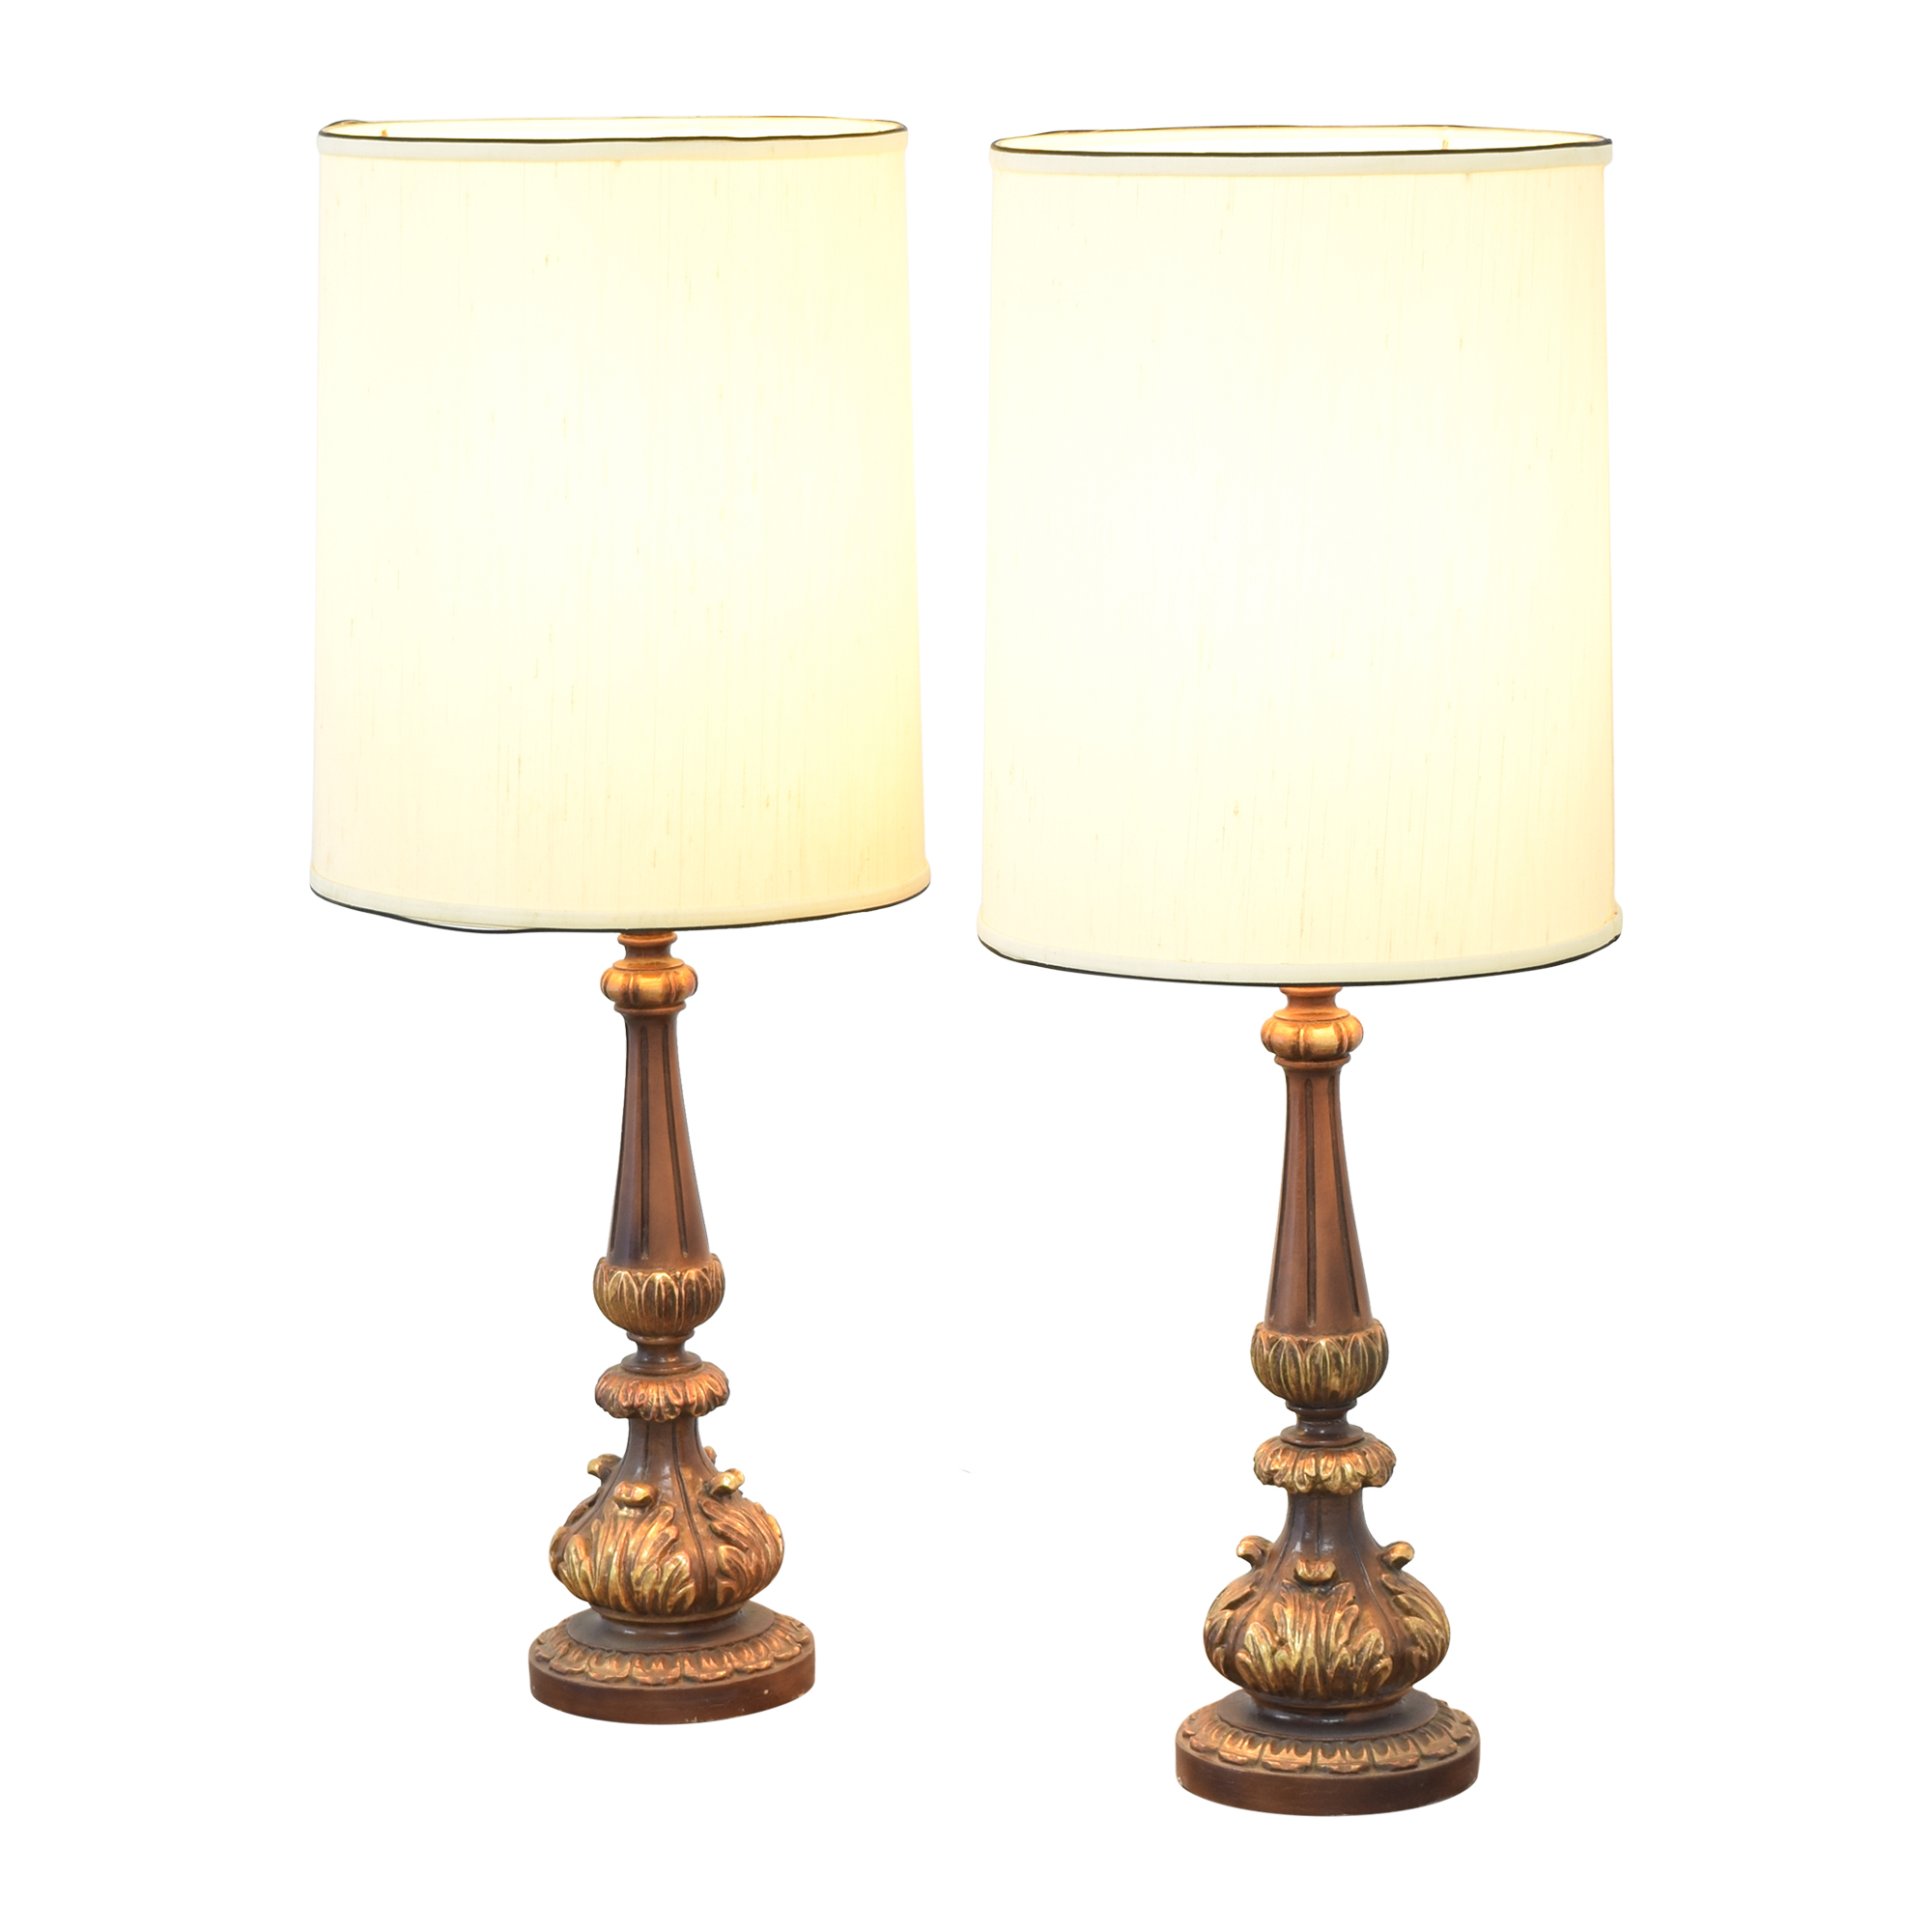 Tall Barrel Shaded Mid-Century Table Lamps ma